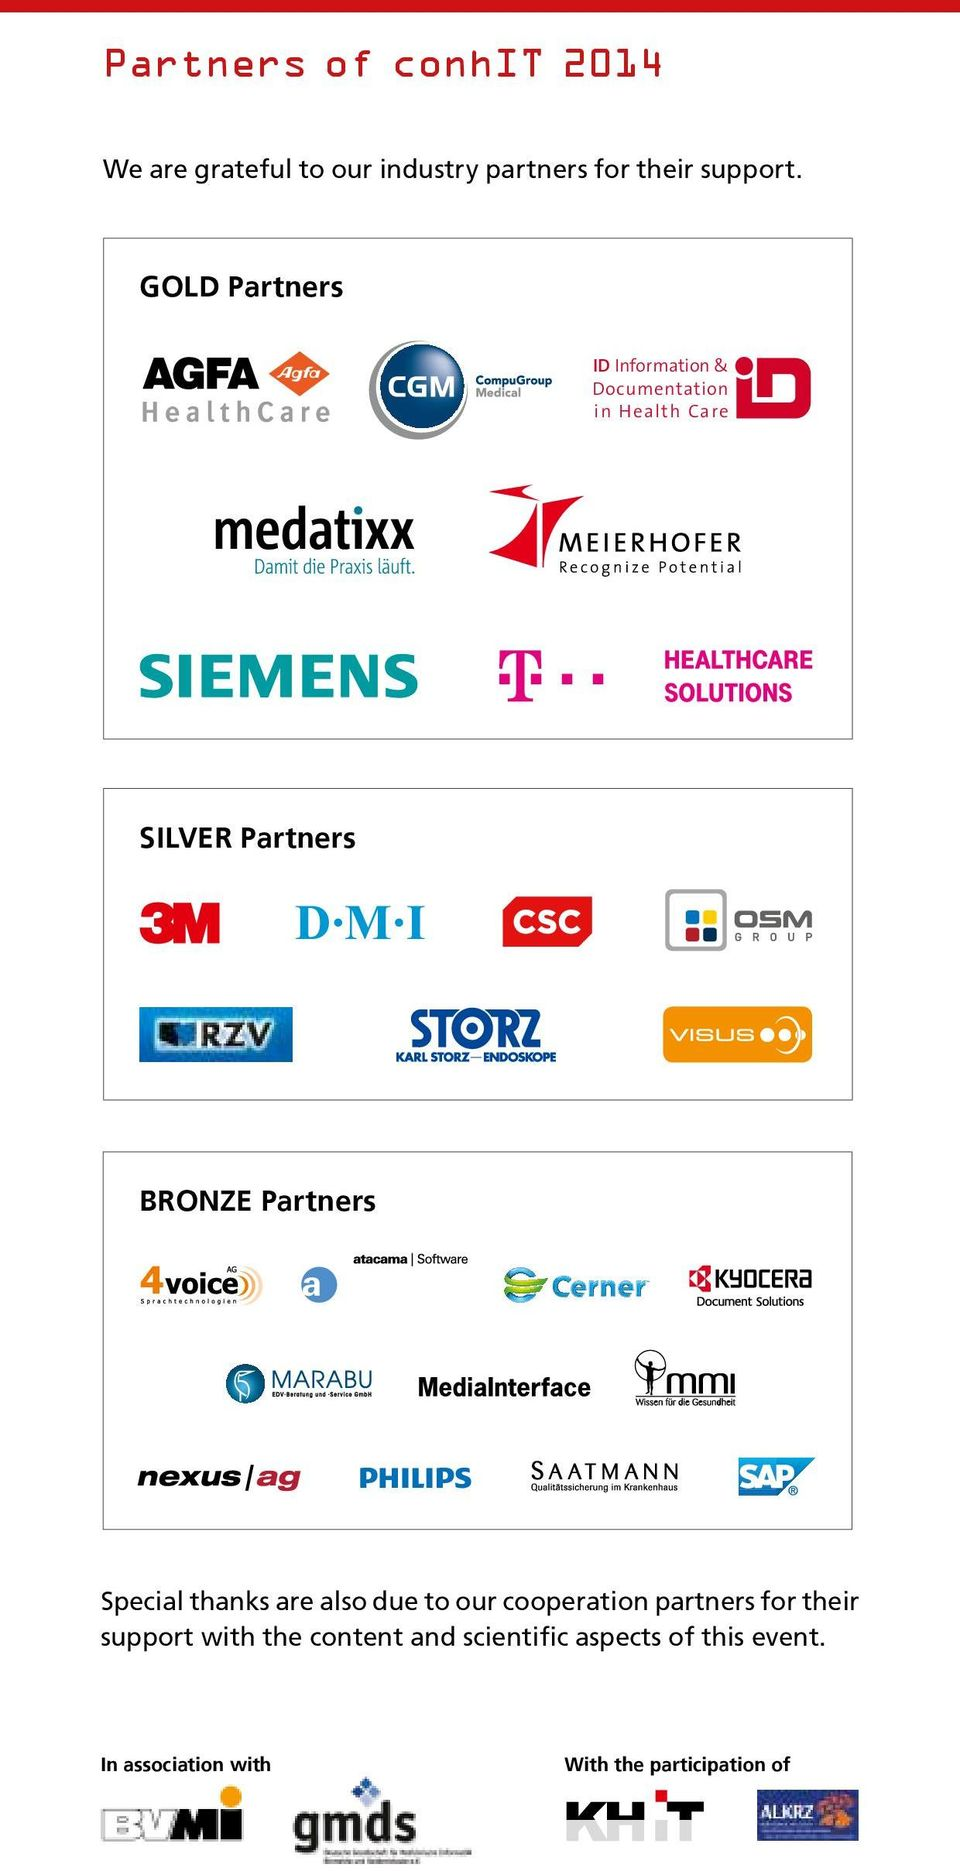 Partners Special thanks are also due to our cooperation partners for their support with